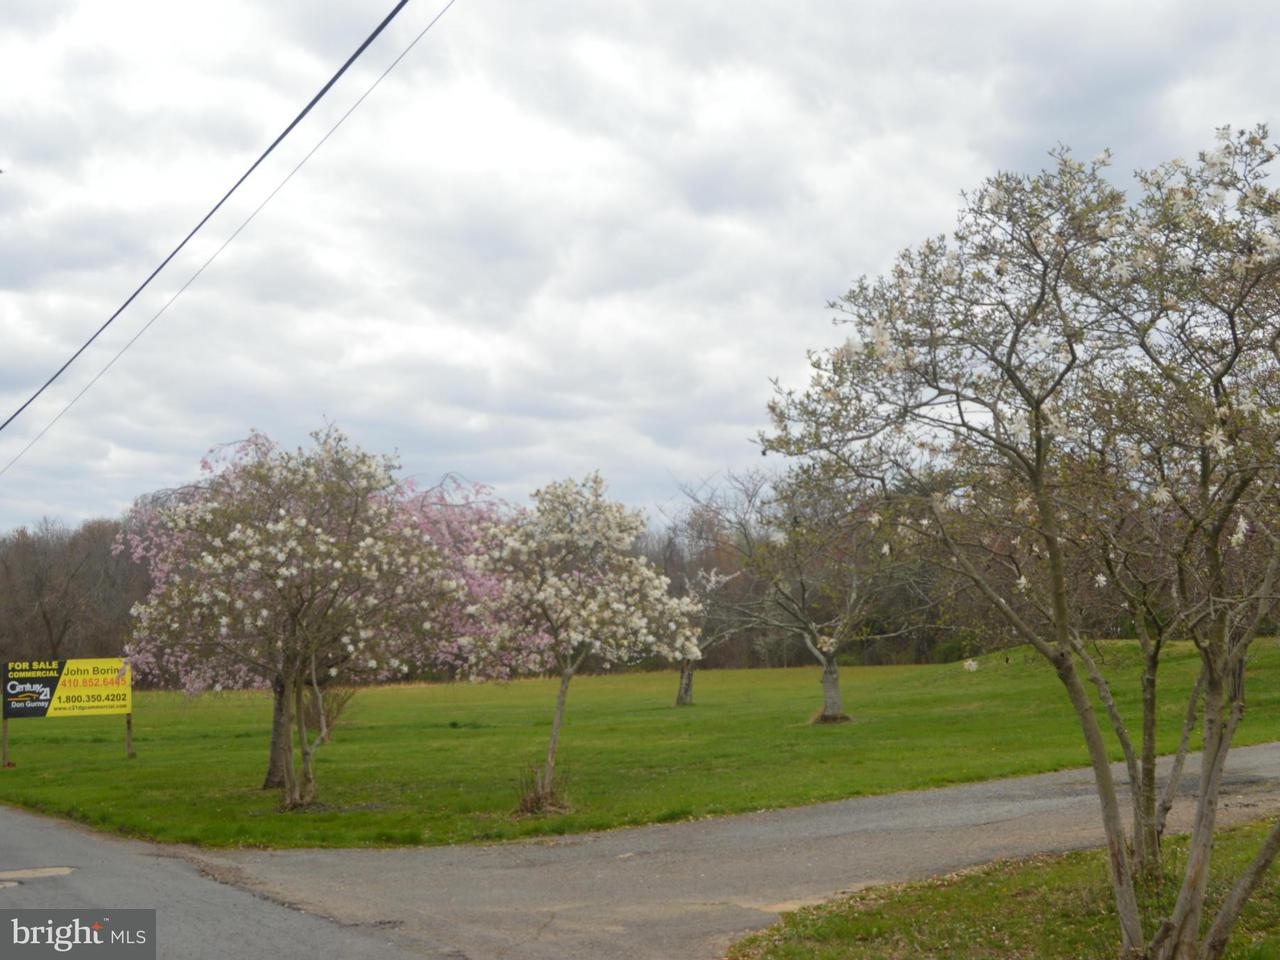 Land for Sale at 7960 Max Blobs Park Rd Jessup, Maryland 20794 United States